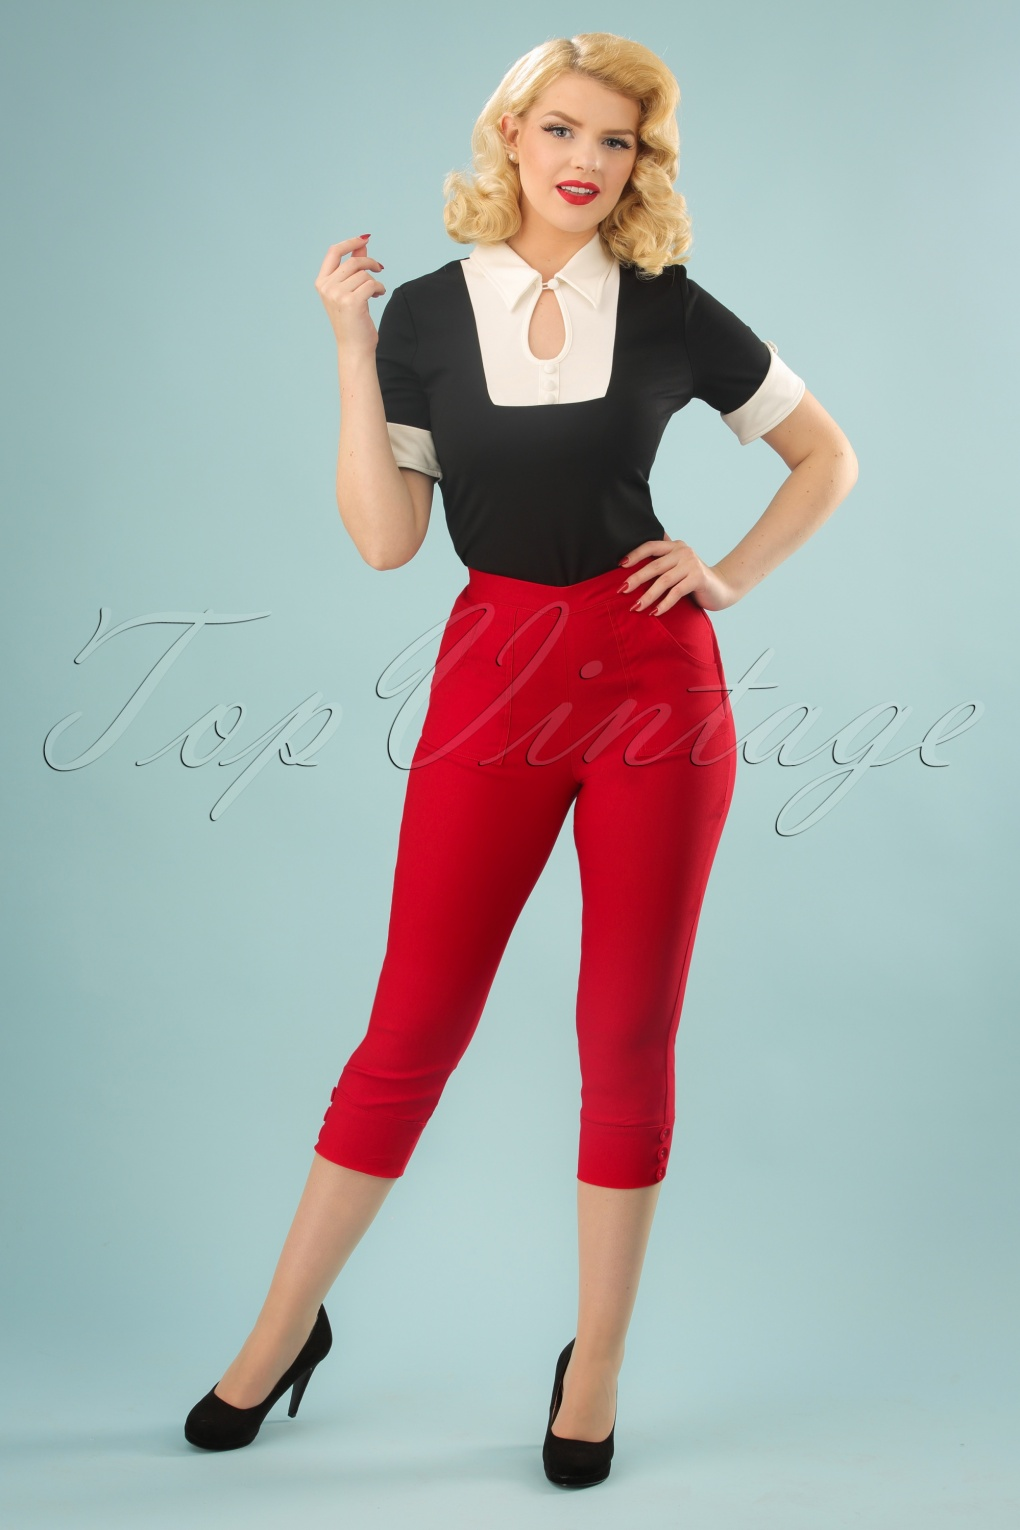 1950s Pants & Jeans- High Waist, Wide Leg, Capri, Pedal Pushers 50s Holly Capri Pants in Red £33.38 AT vintagedancer.com